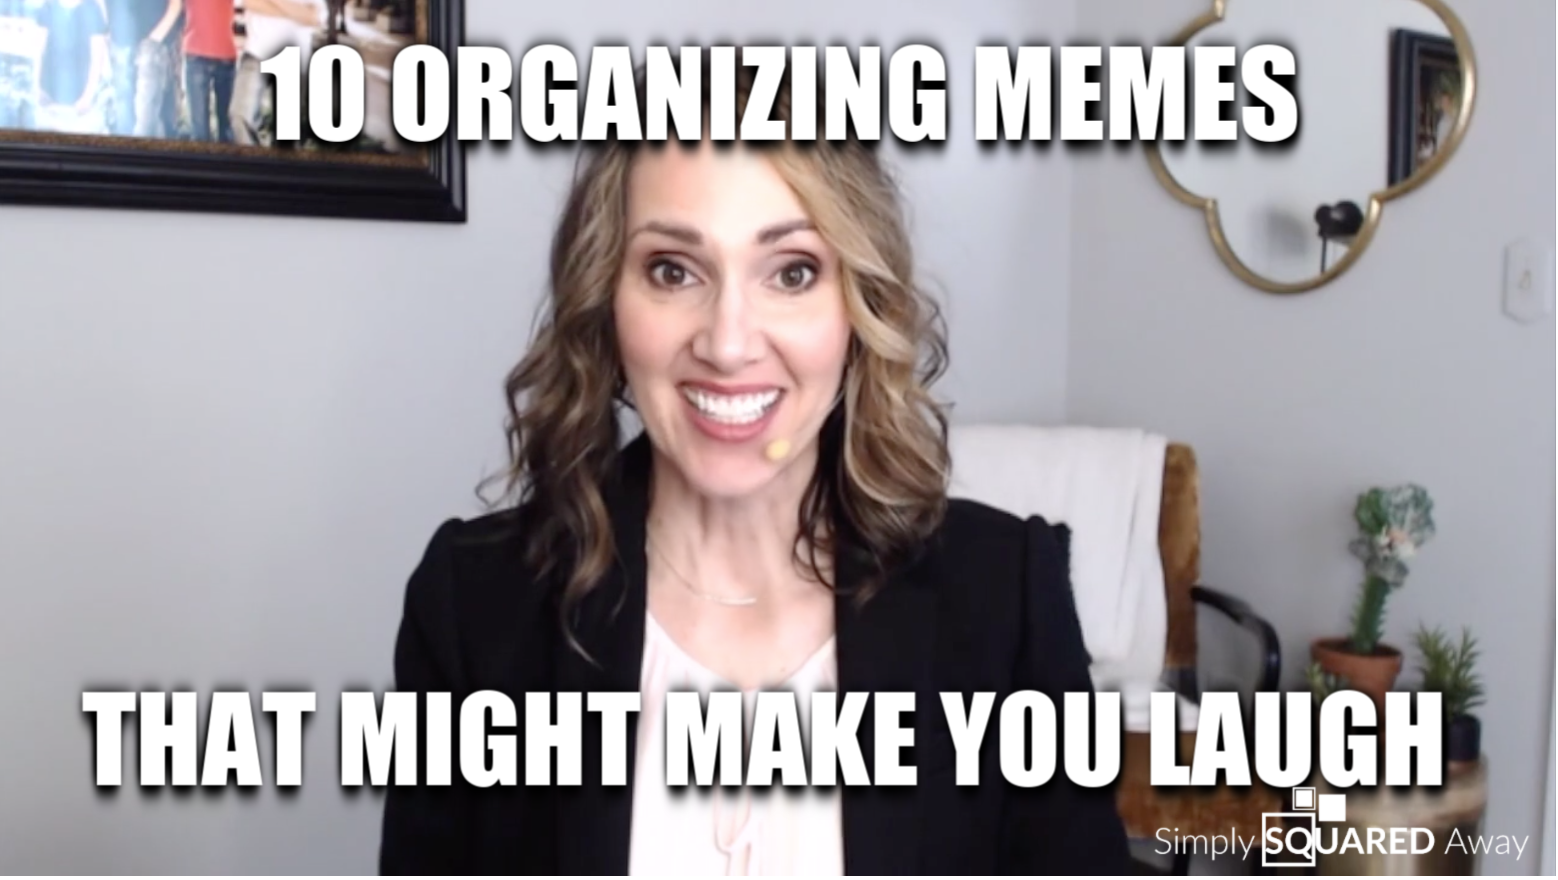 Which one of these memes about organizing best describes you?